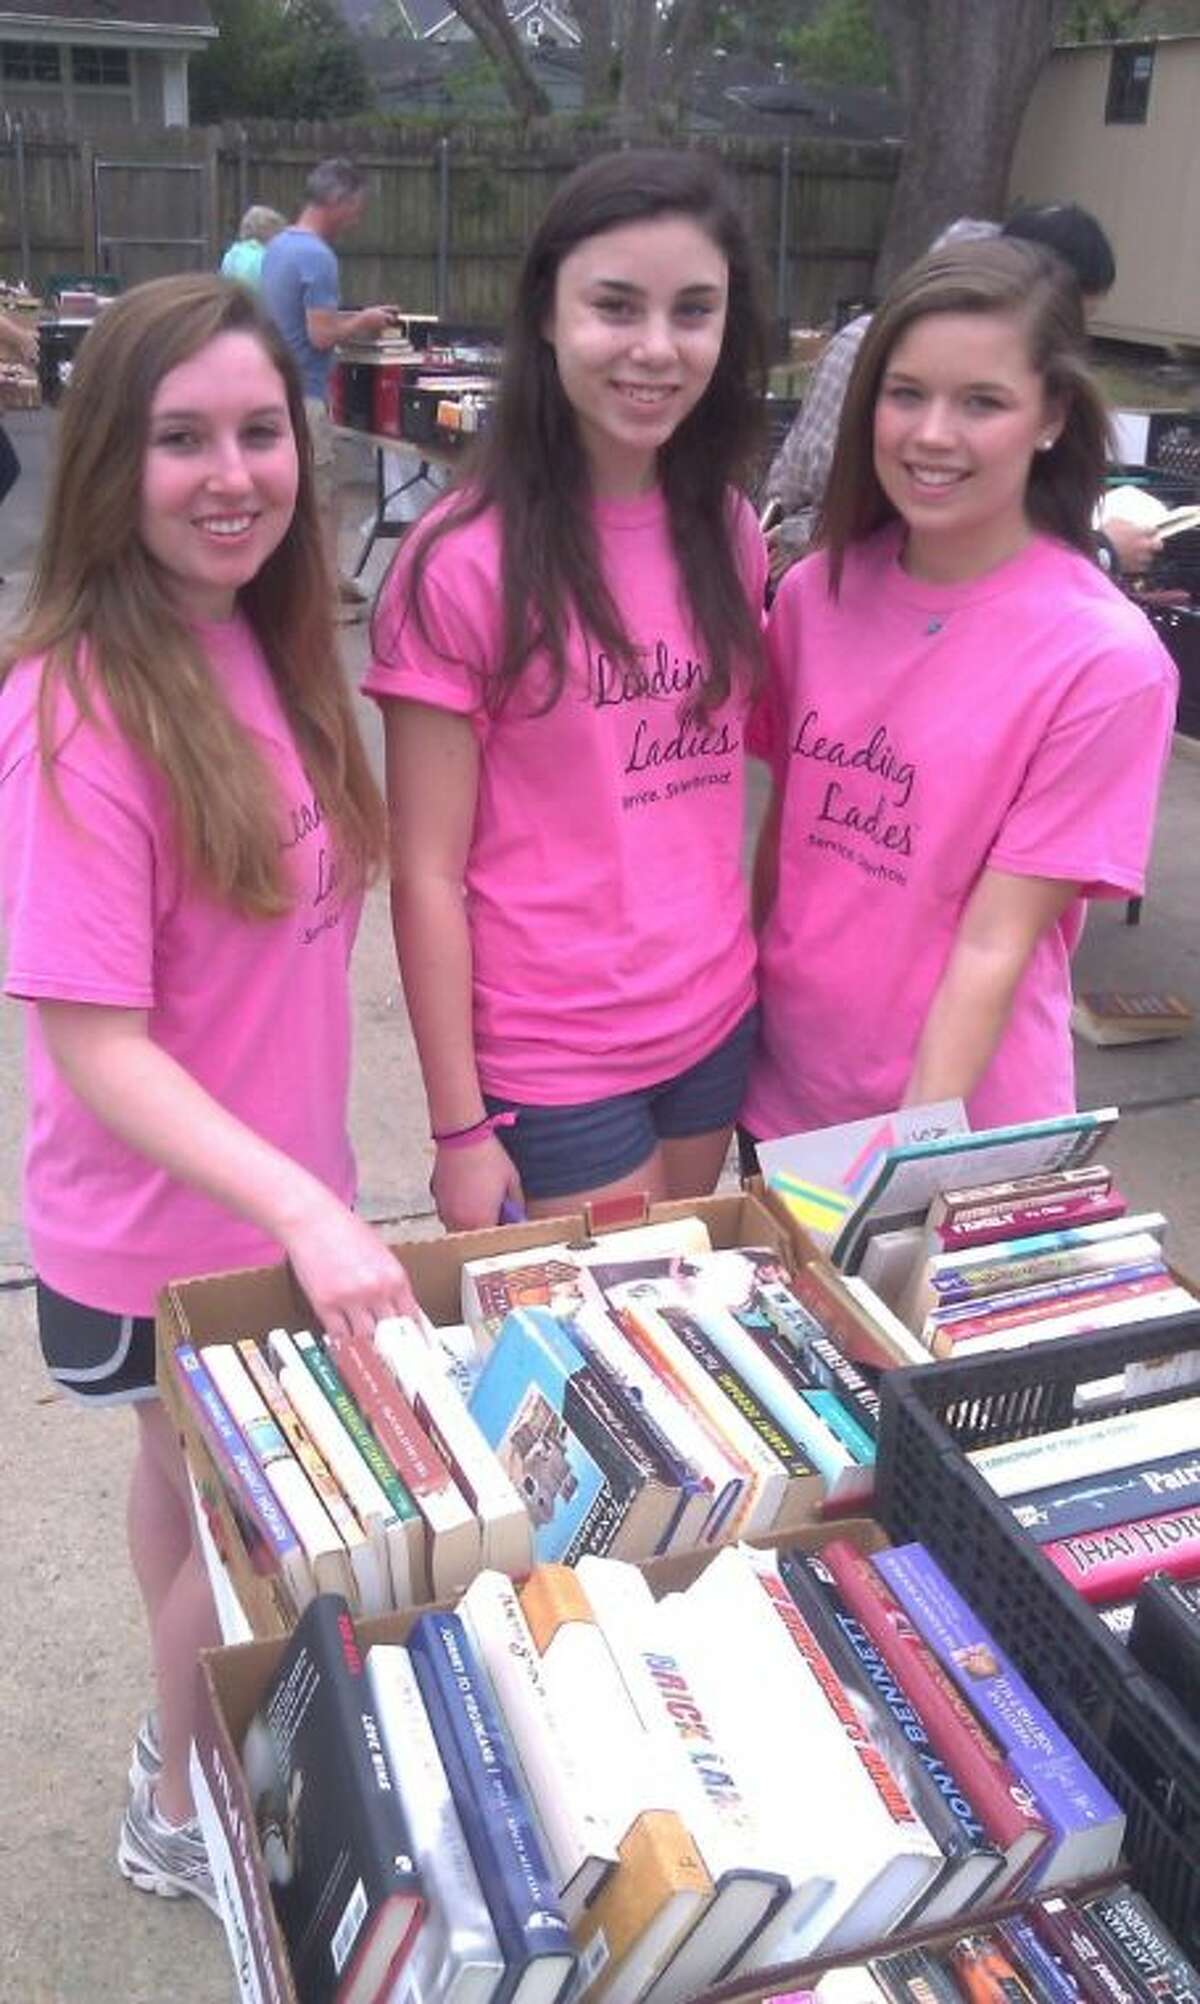 From left, Bellaire High School juniors and Leading Ladies members Julia Johnson, Hannah Brookner and Madeline Richardson are among volunteers helping the Friends of Bellaire Library gear up for bi-annual book sale,which will be held this Saturday, Nov. 2, from 9 a.m. to 4 p.m. at the Bellaire Library, 5111 Jessamine St.